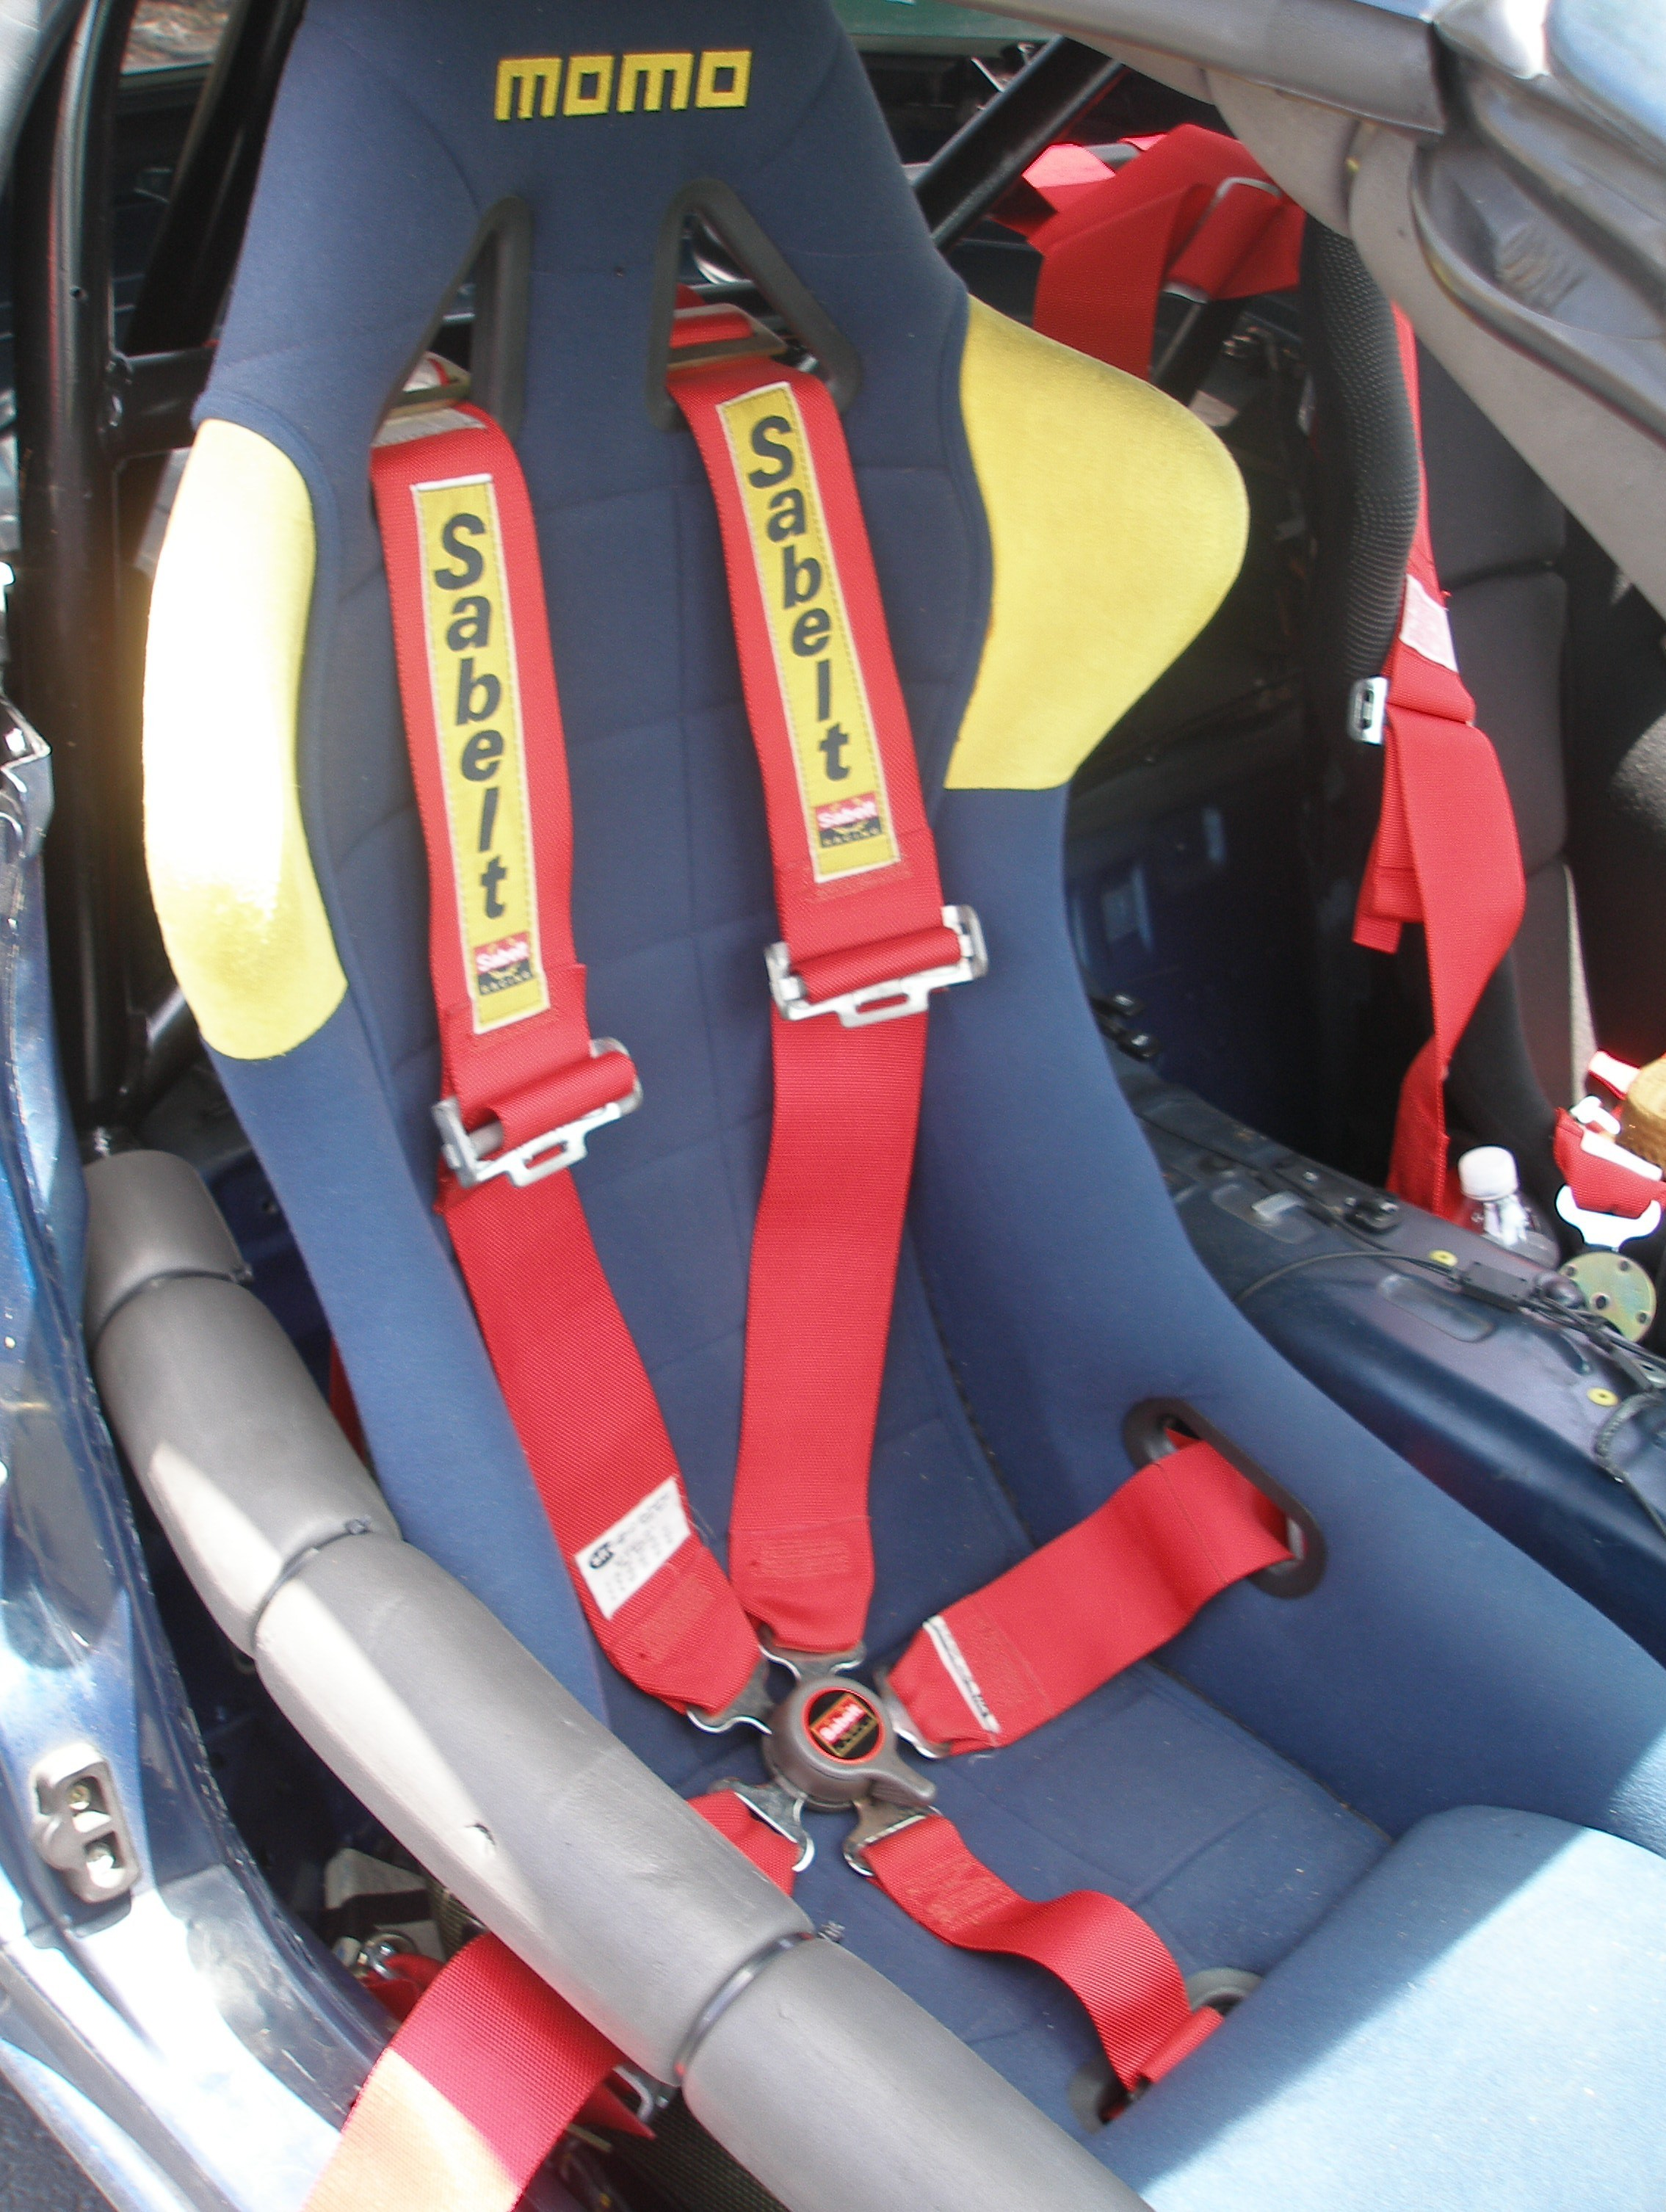 Five Point Harness For Race Cars Reveolution Of Wiring Diagram Automotive Wikipedia The Amateur Racing Enthusiast S Source 90 Ready Wannabe Rh Racingready Com Car Seat Six